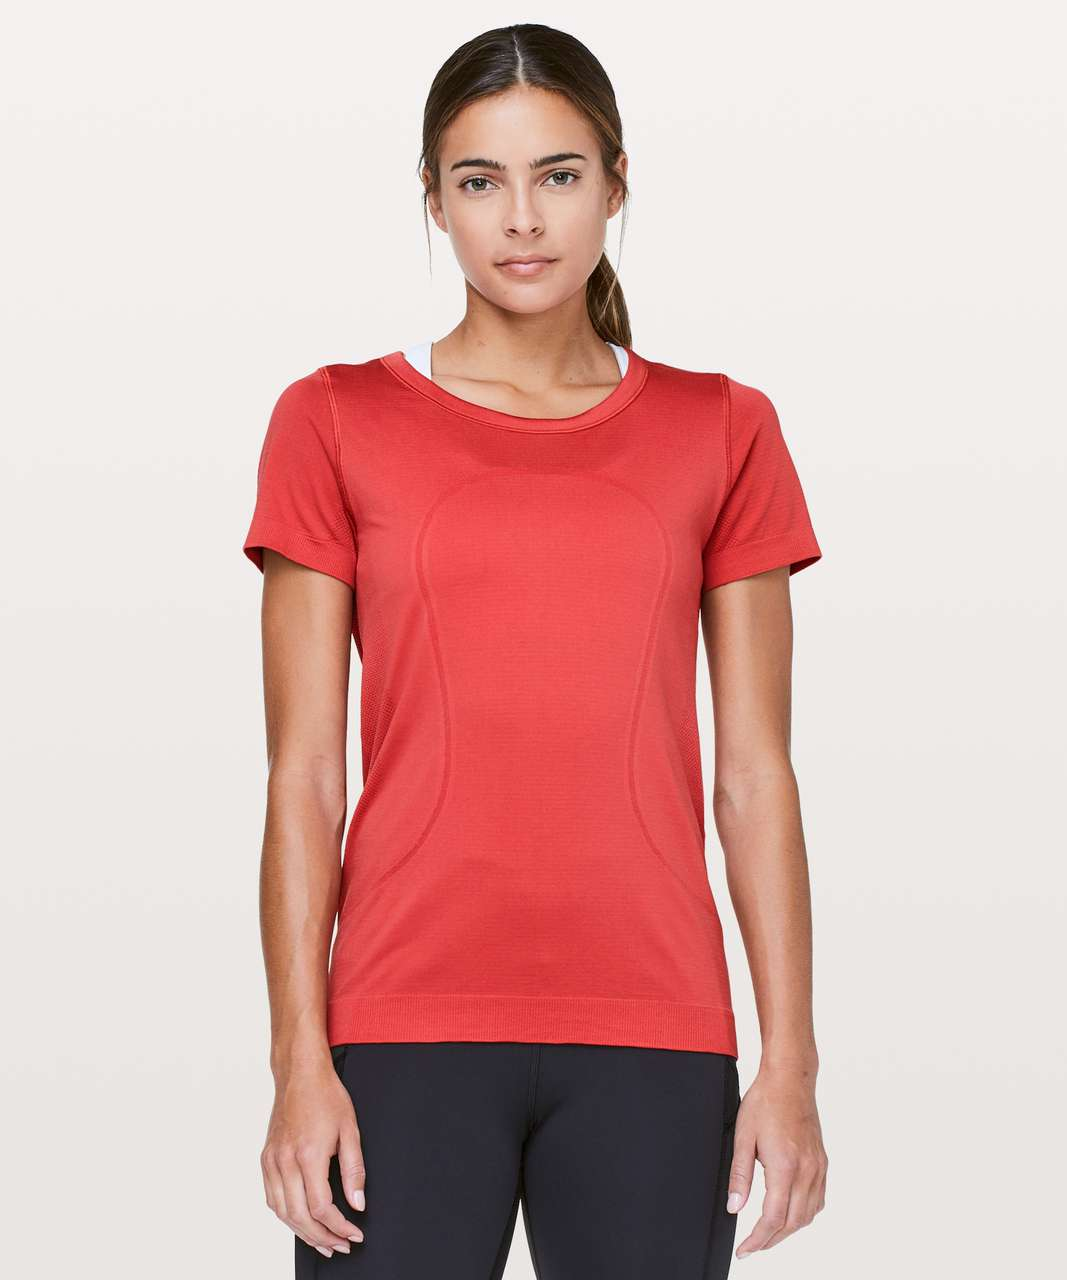 Lululemon Swiftly Tech Short Sleeve (Breeze) *Relaxed Fit - Aries / Aries